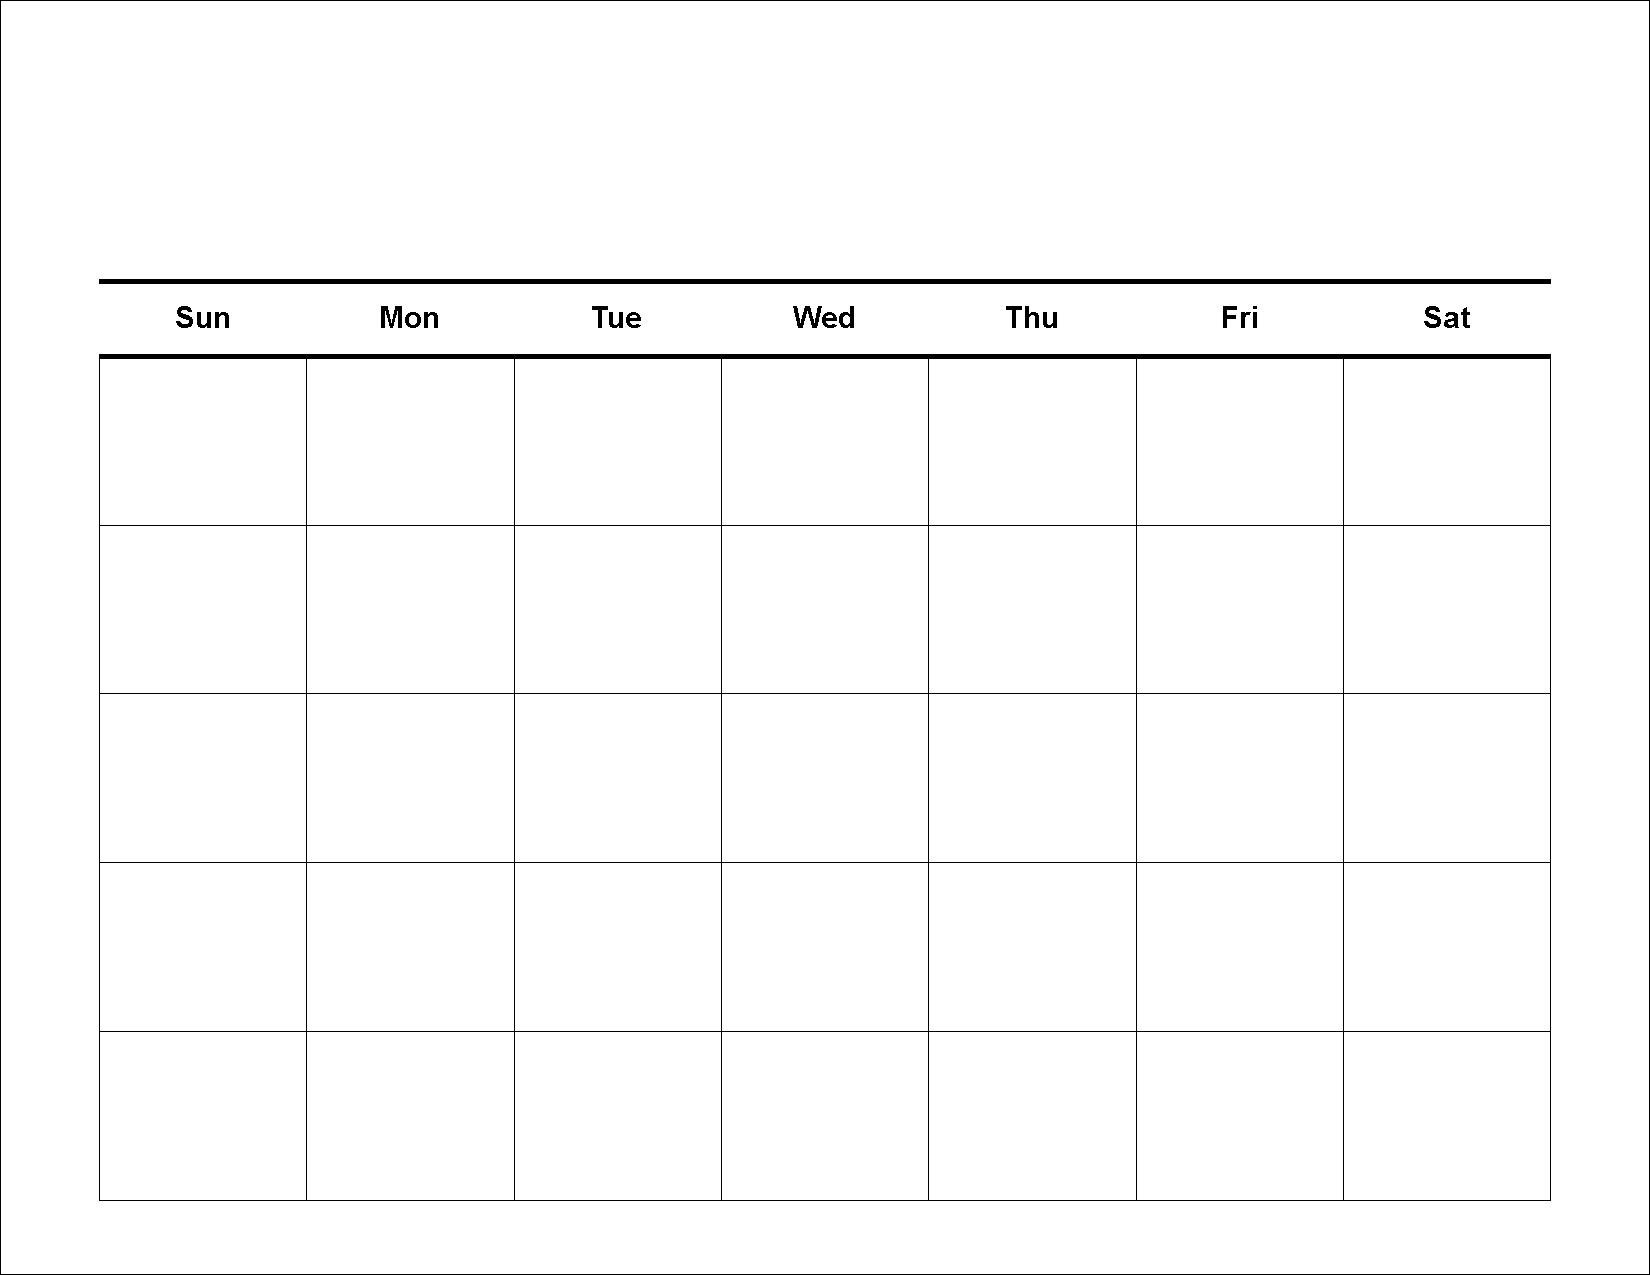 30-Day-Calendar-Template-Printable-Large_Free Calendar Blanks To Print